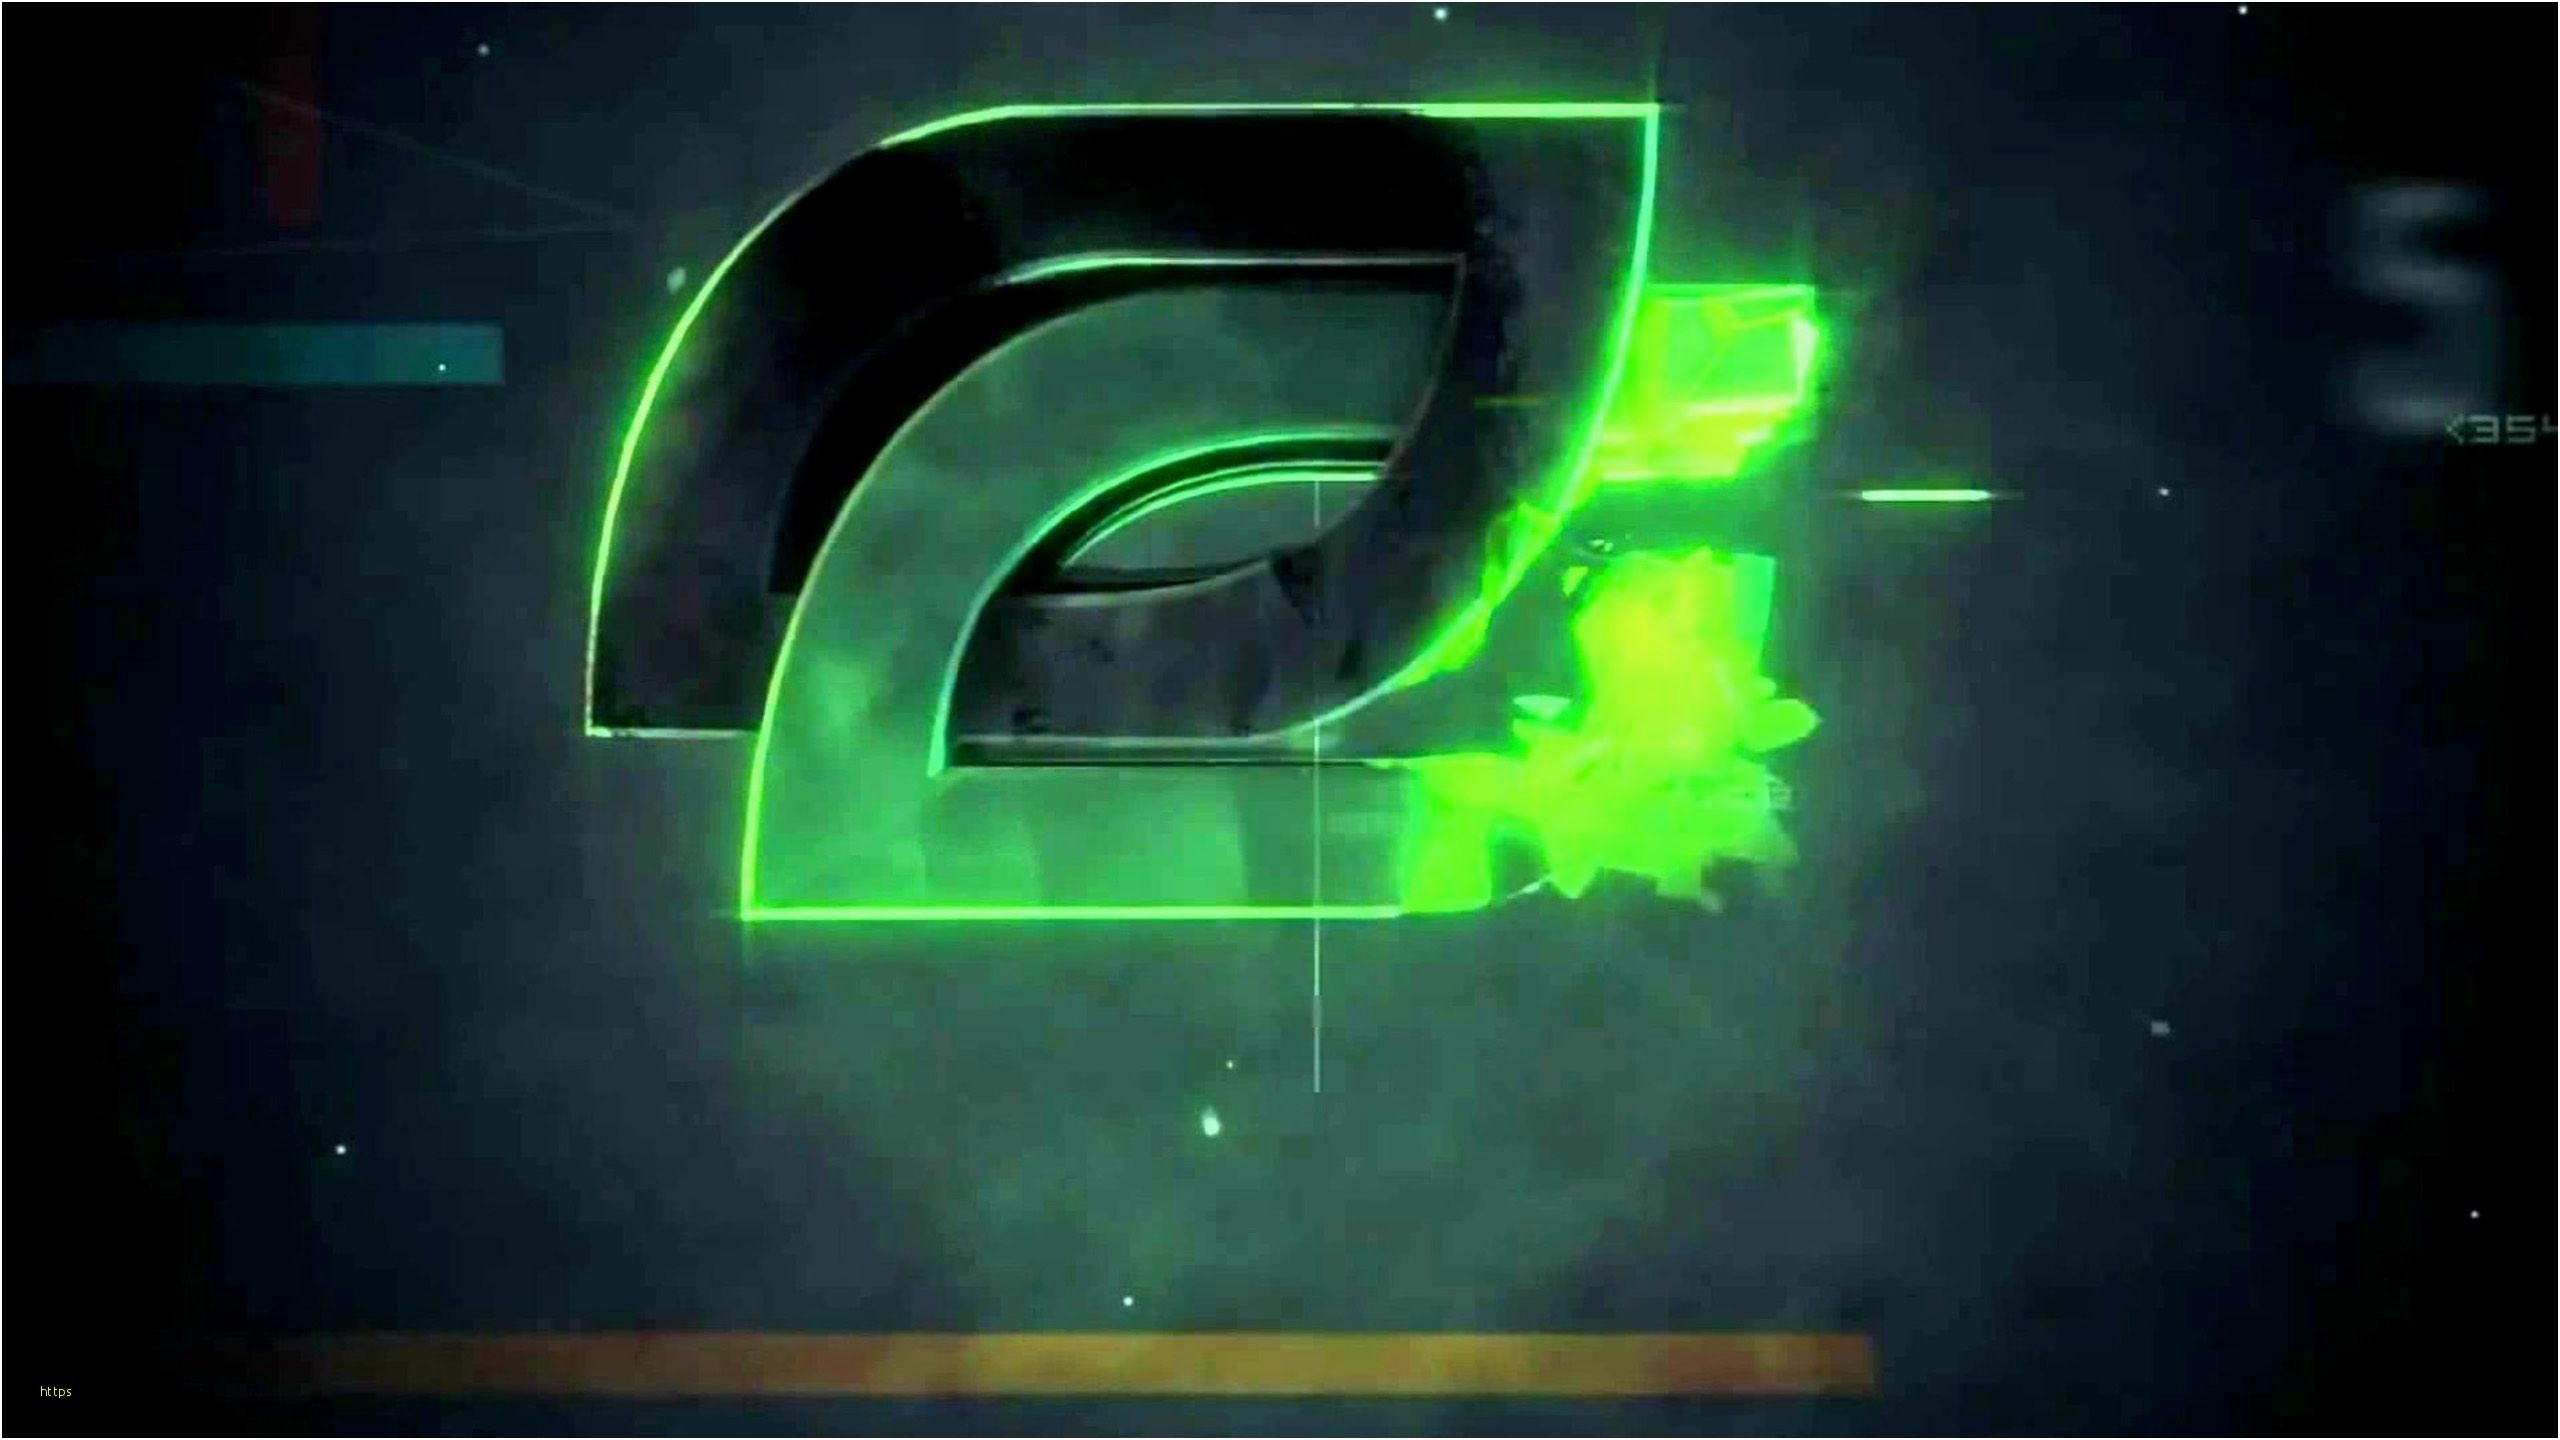 2560x1440 ... Optic Gaming Wallpaper Fresh Optic Gaming Wallpapers 2016 Wallpaper Cave